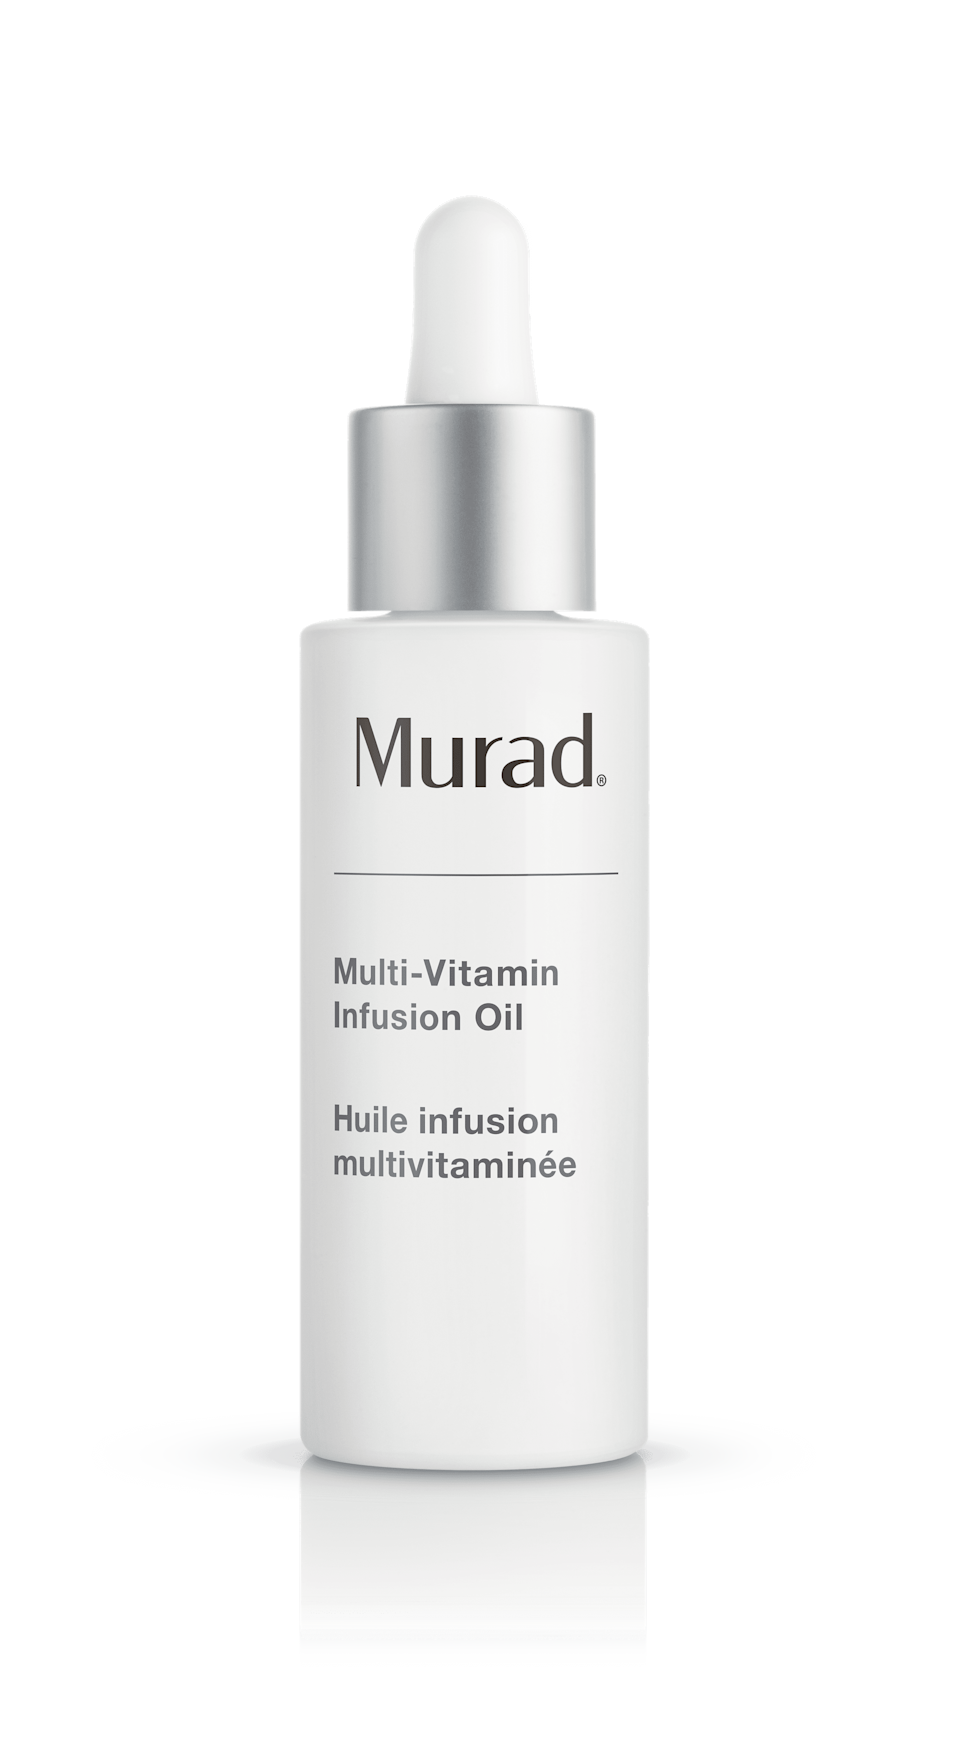 <p>Tested on sensitive skin, this noncomedogenic, paraben- and sulphate-free formula created by doctor-led beauty brand, Murad Skincare, includes both vitamins A and F, as well as salicylic acid to help soothe redness and inflammation. The <span>Murad Multi-Vitamin Infusion Oil</span> ($73) is a really light formula, absorbing quickly into your skin and helping to replenish moisture levels while also targeting fine lines. Apply every morning and night, and sensitive skin types are advised to use eight drops.</p>